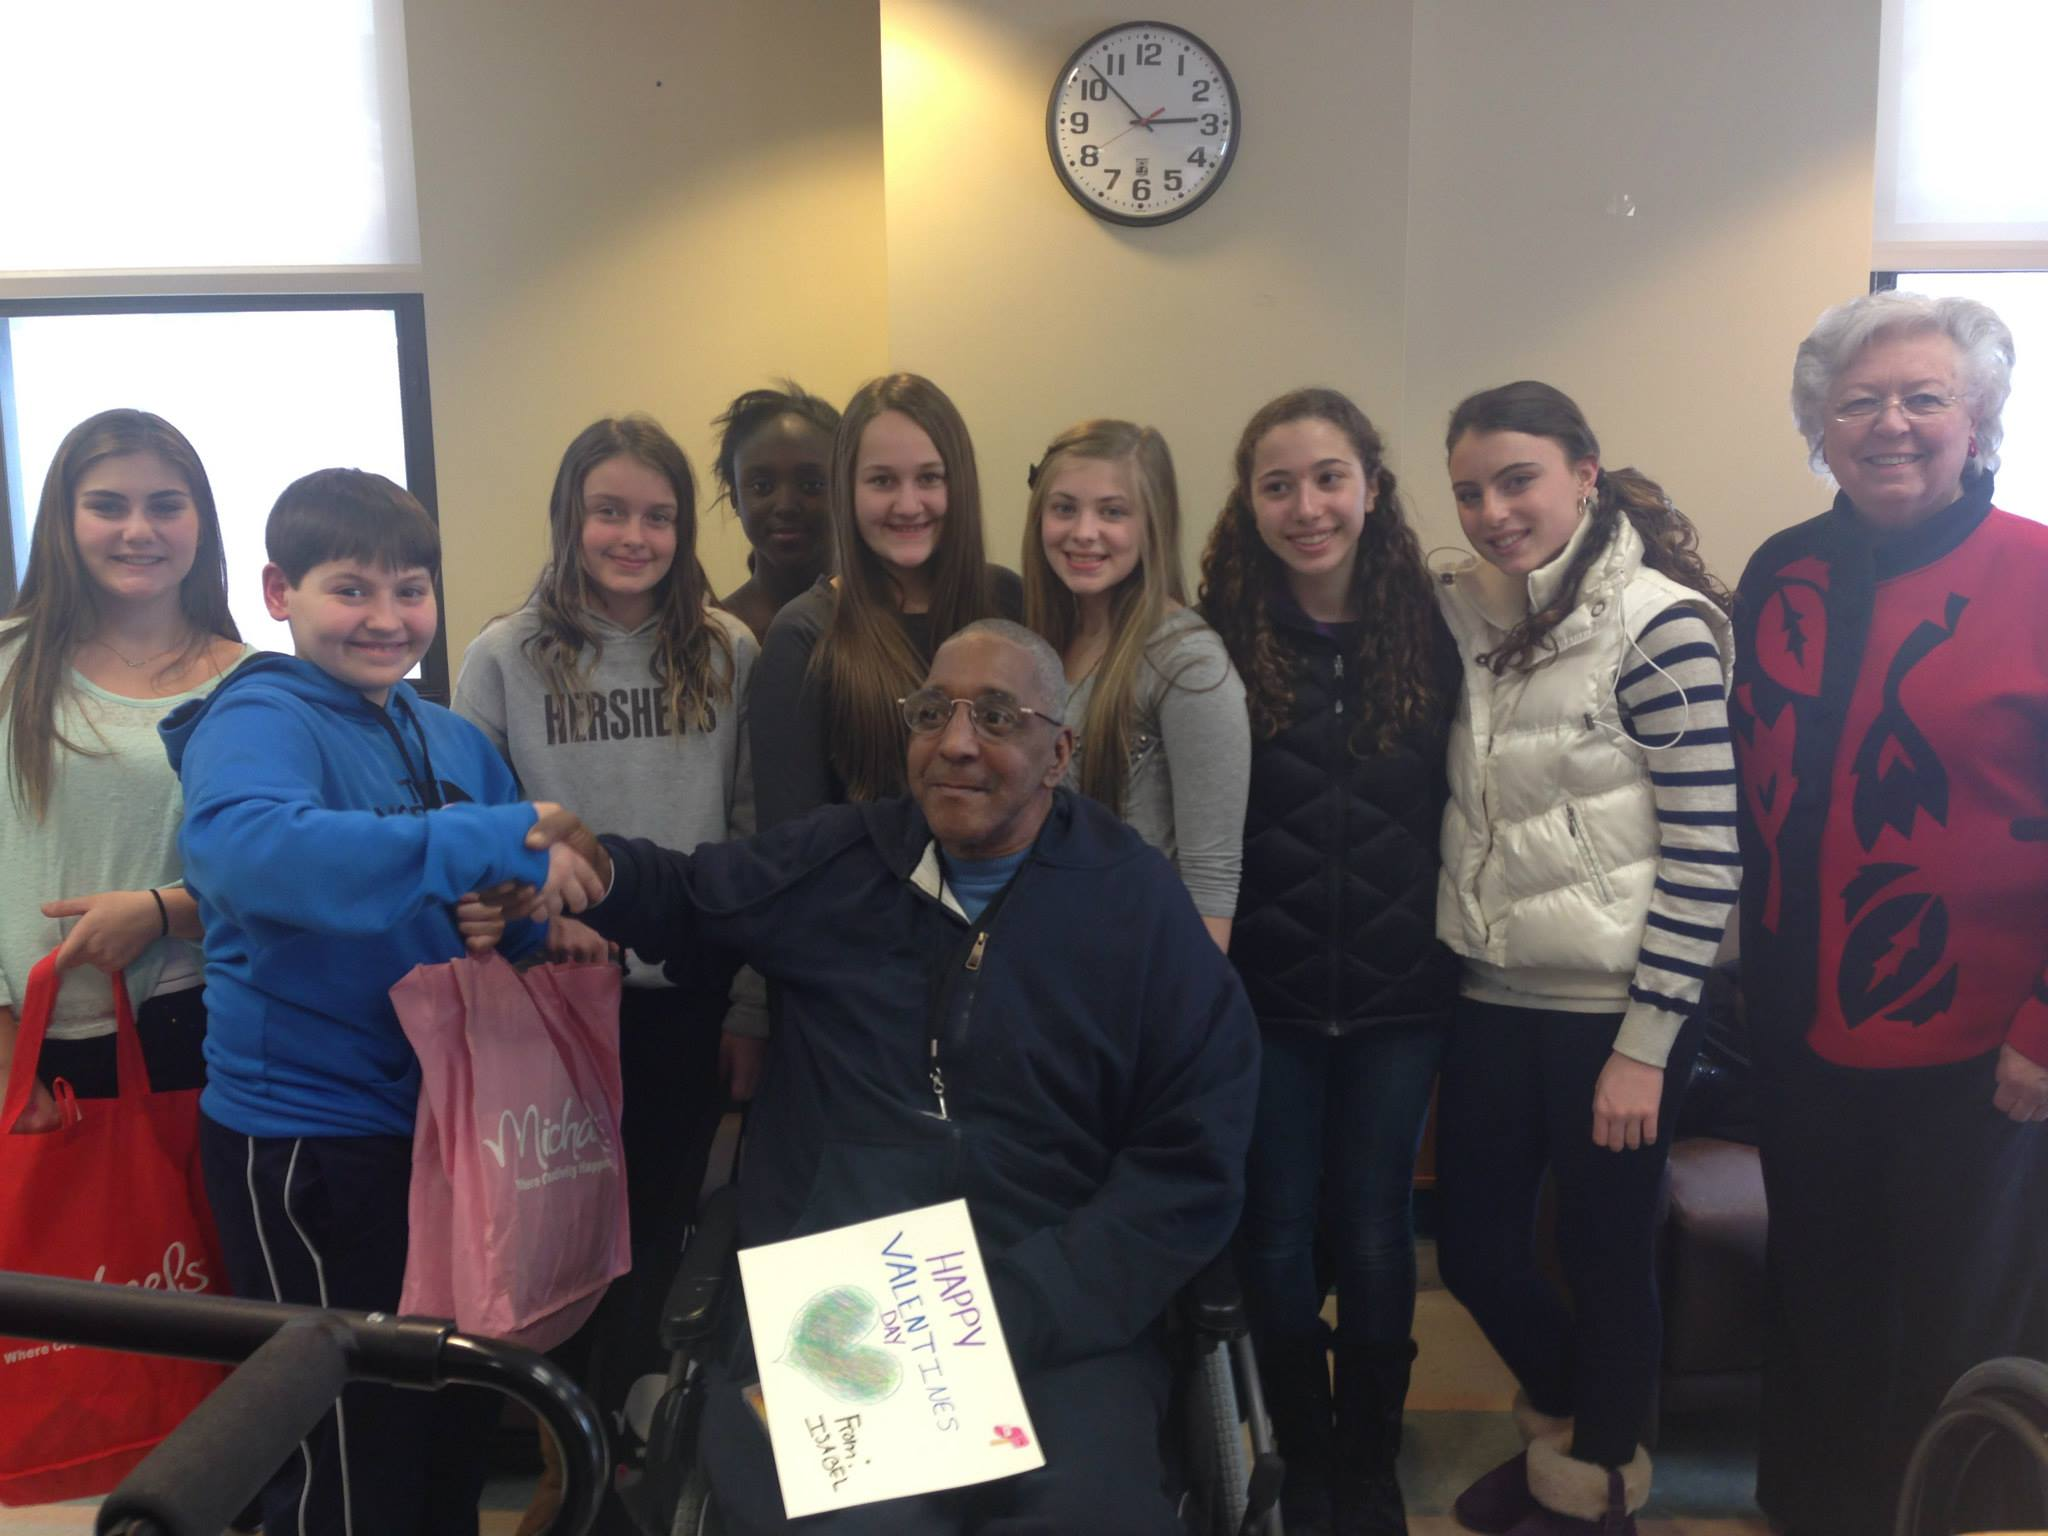 Sandy and middle school students from the Hendrick Hudson School District visited with veterans at the Veterans Affairs Medical Center in Montrose. They spoke with many veterans residing there and han